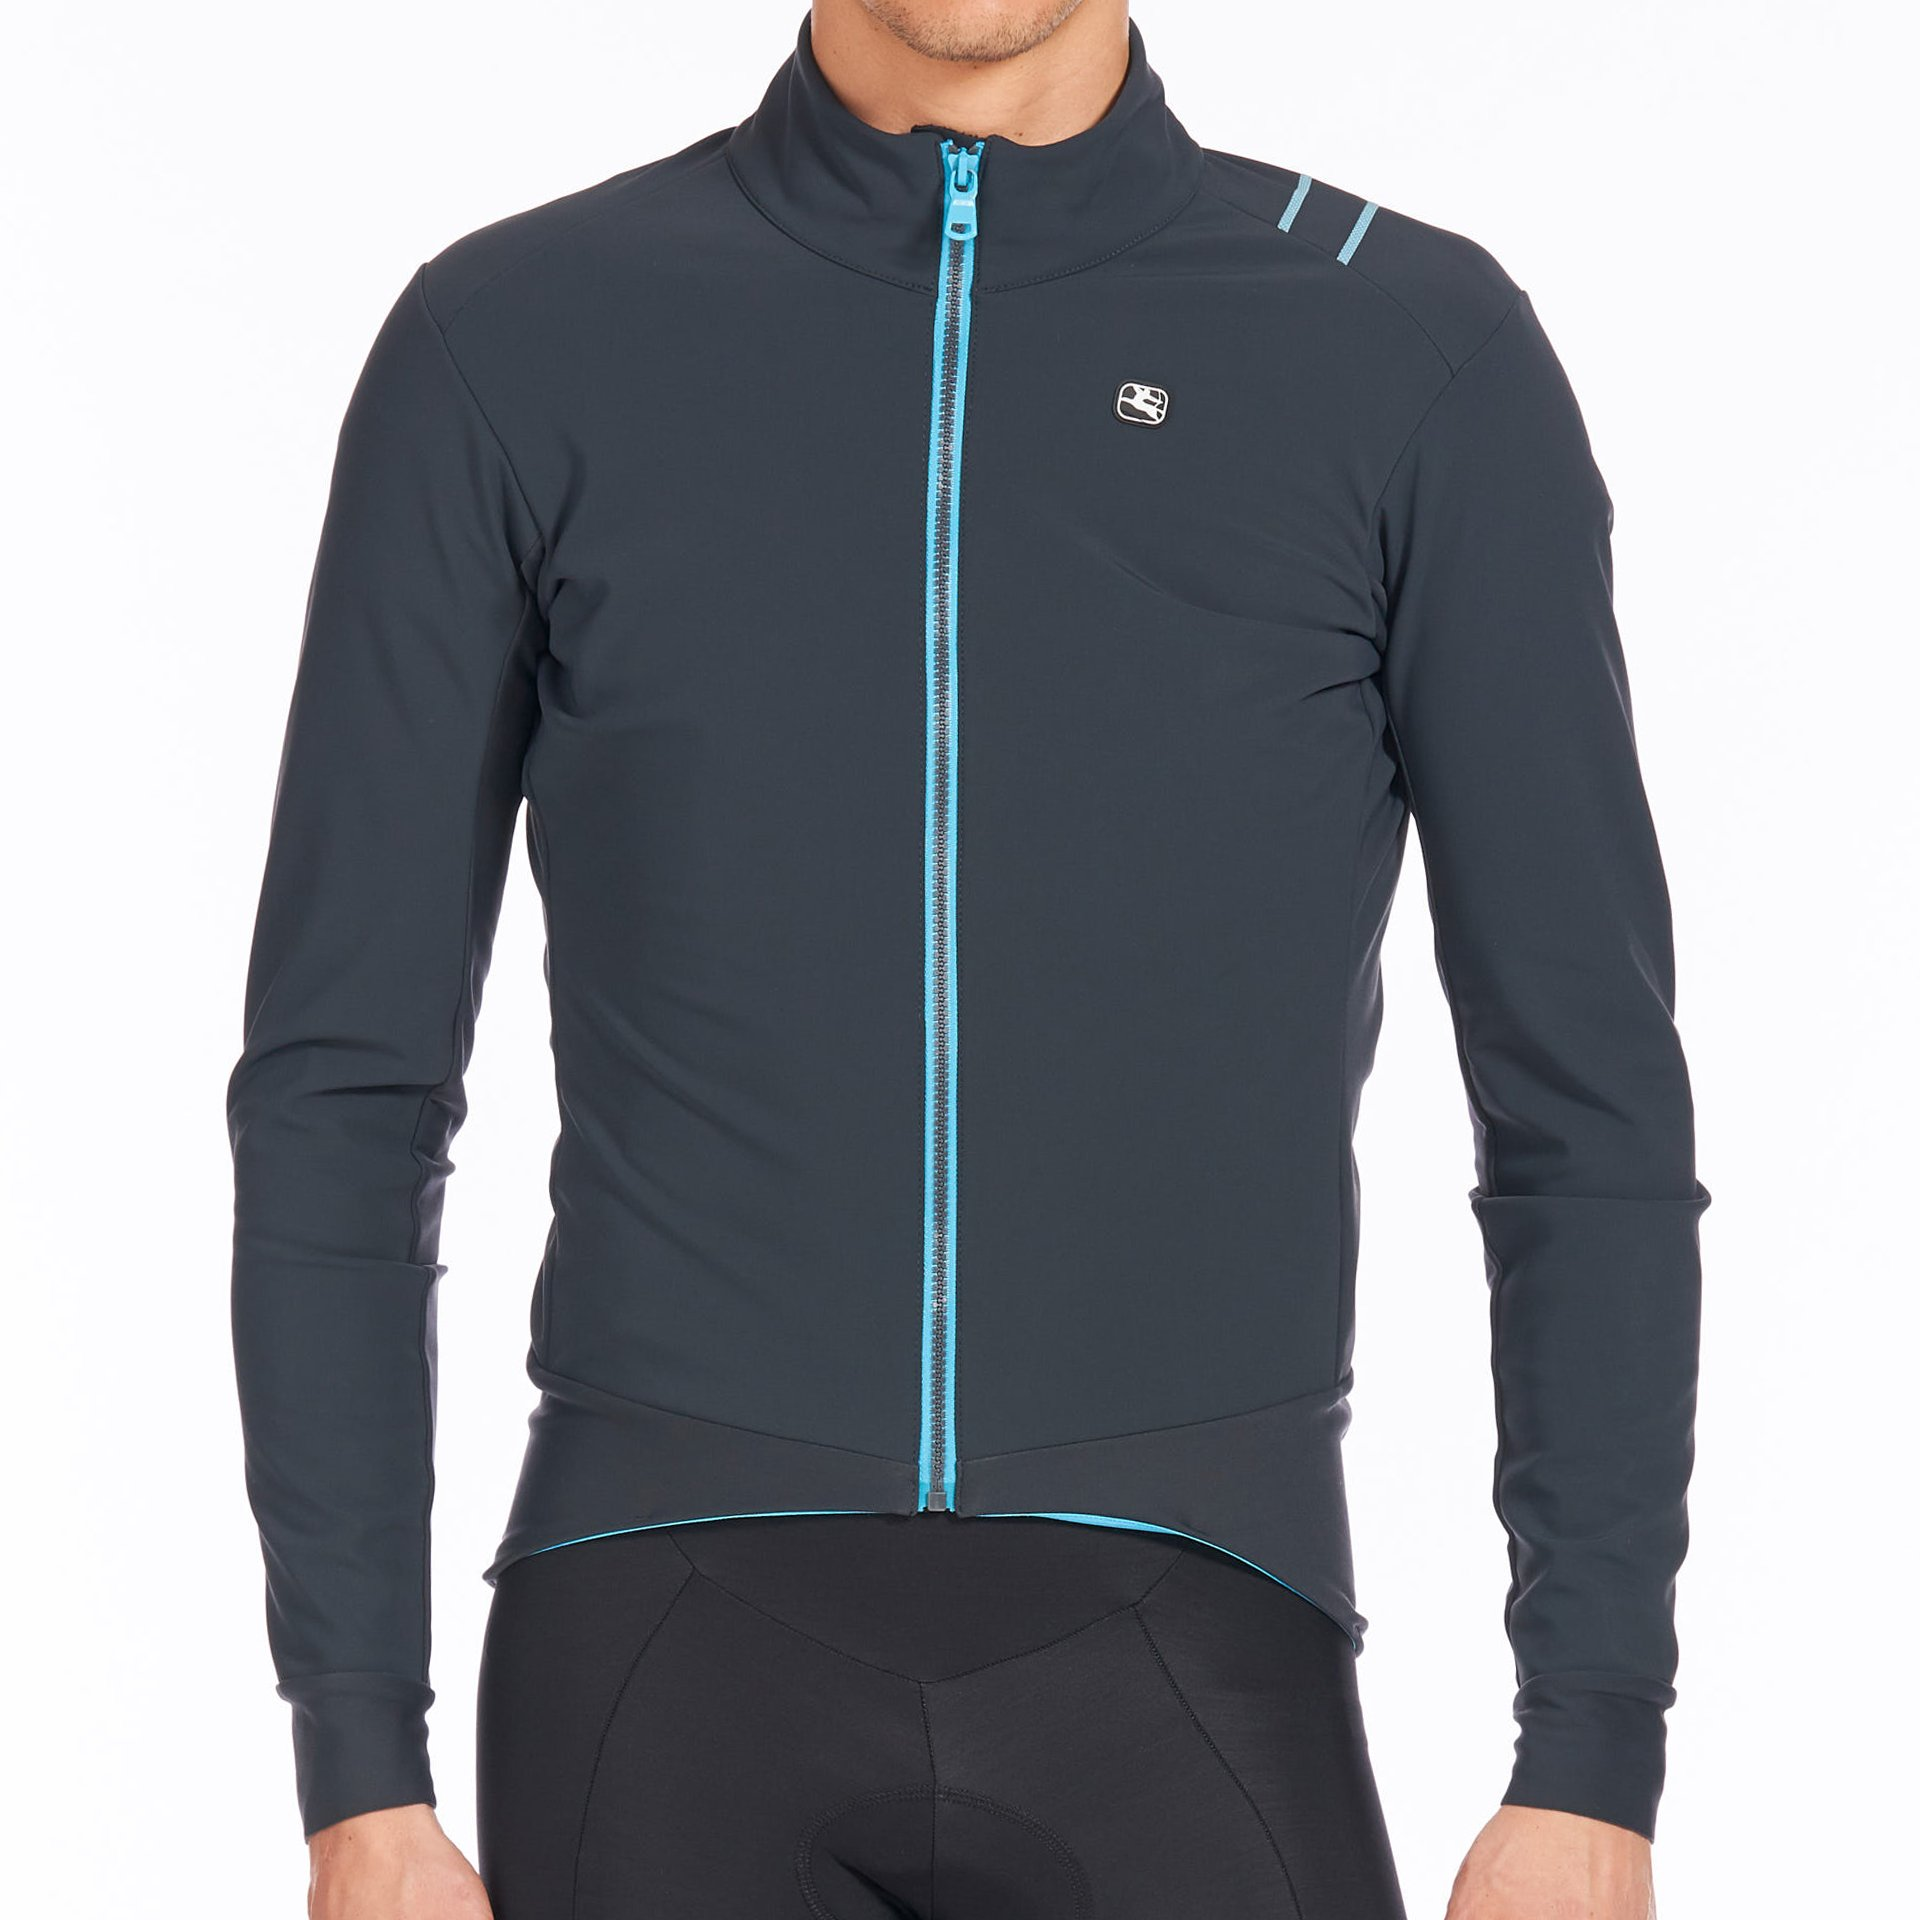 giordana-fusion-jacket-charcoal-blue-large